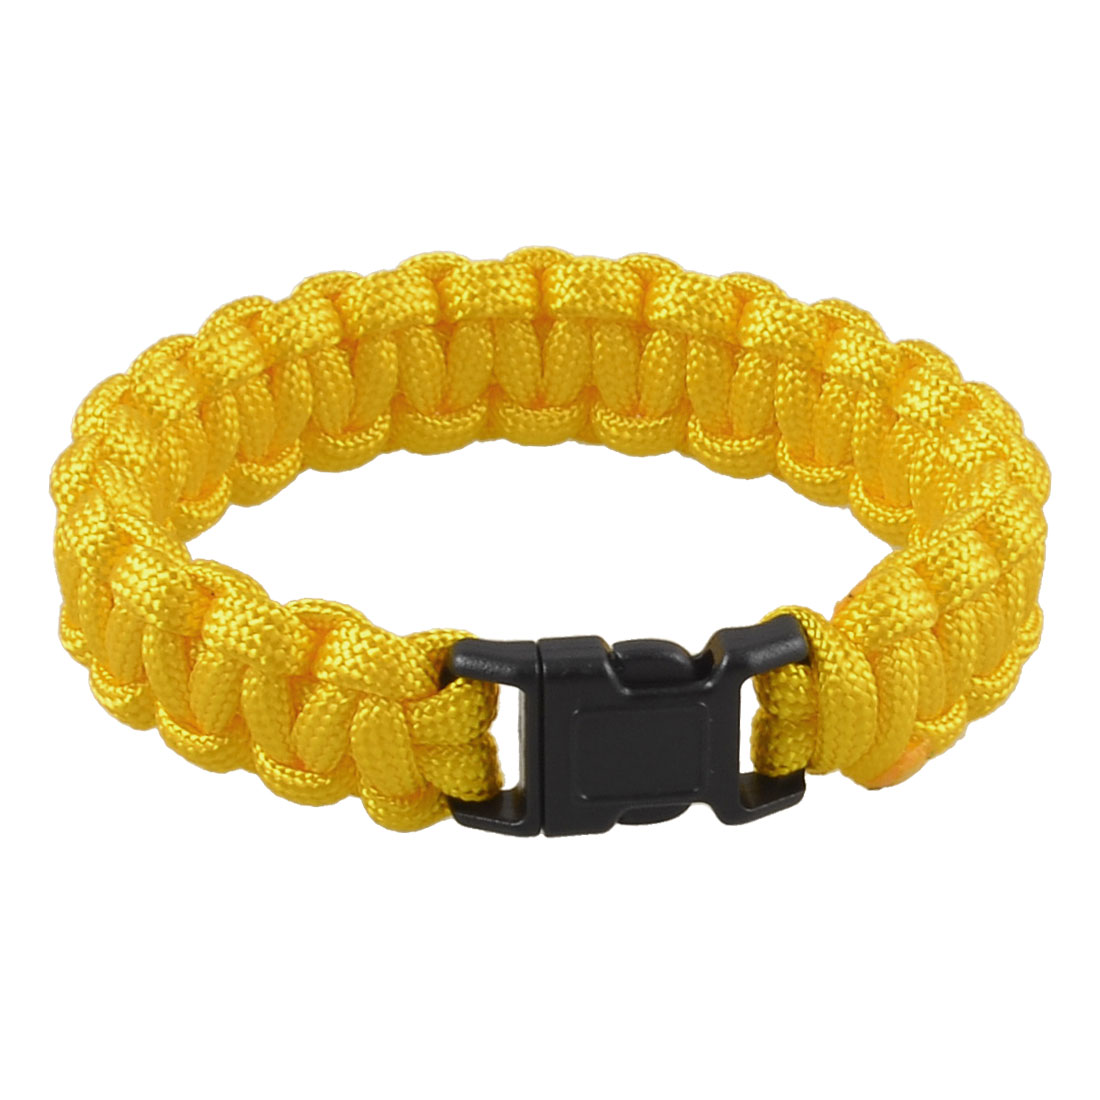 "9"" Girth Plastic Side Release Buckle Para Cord Rescue Survival Bracelet Yellow"